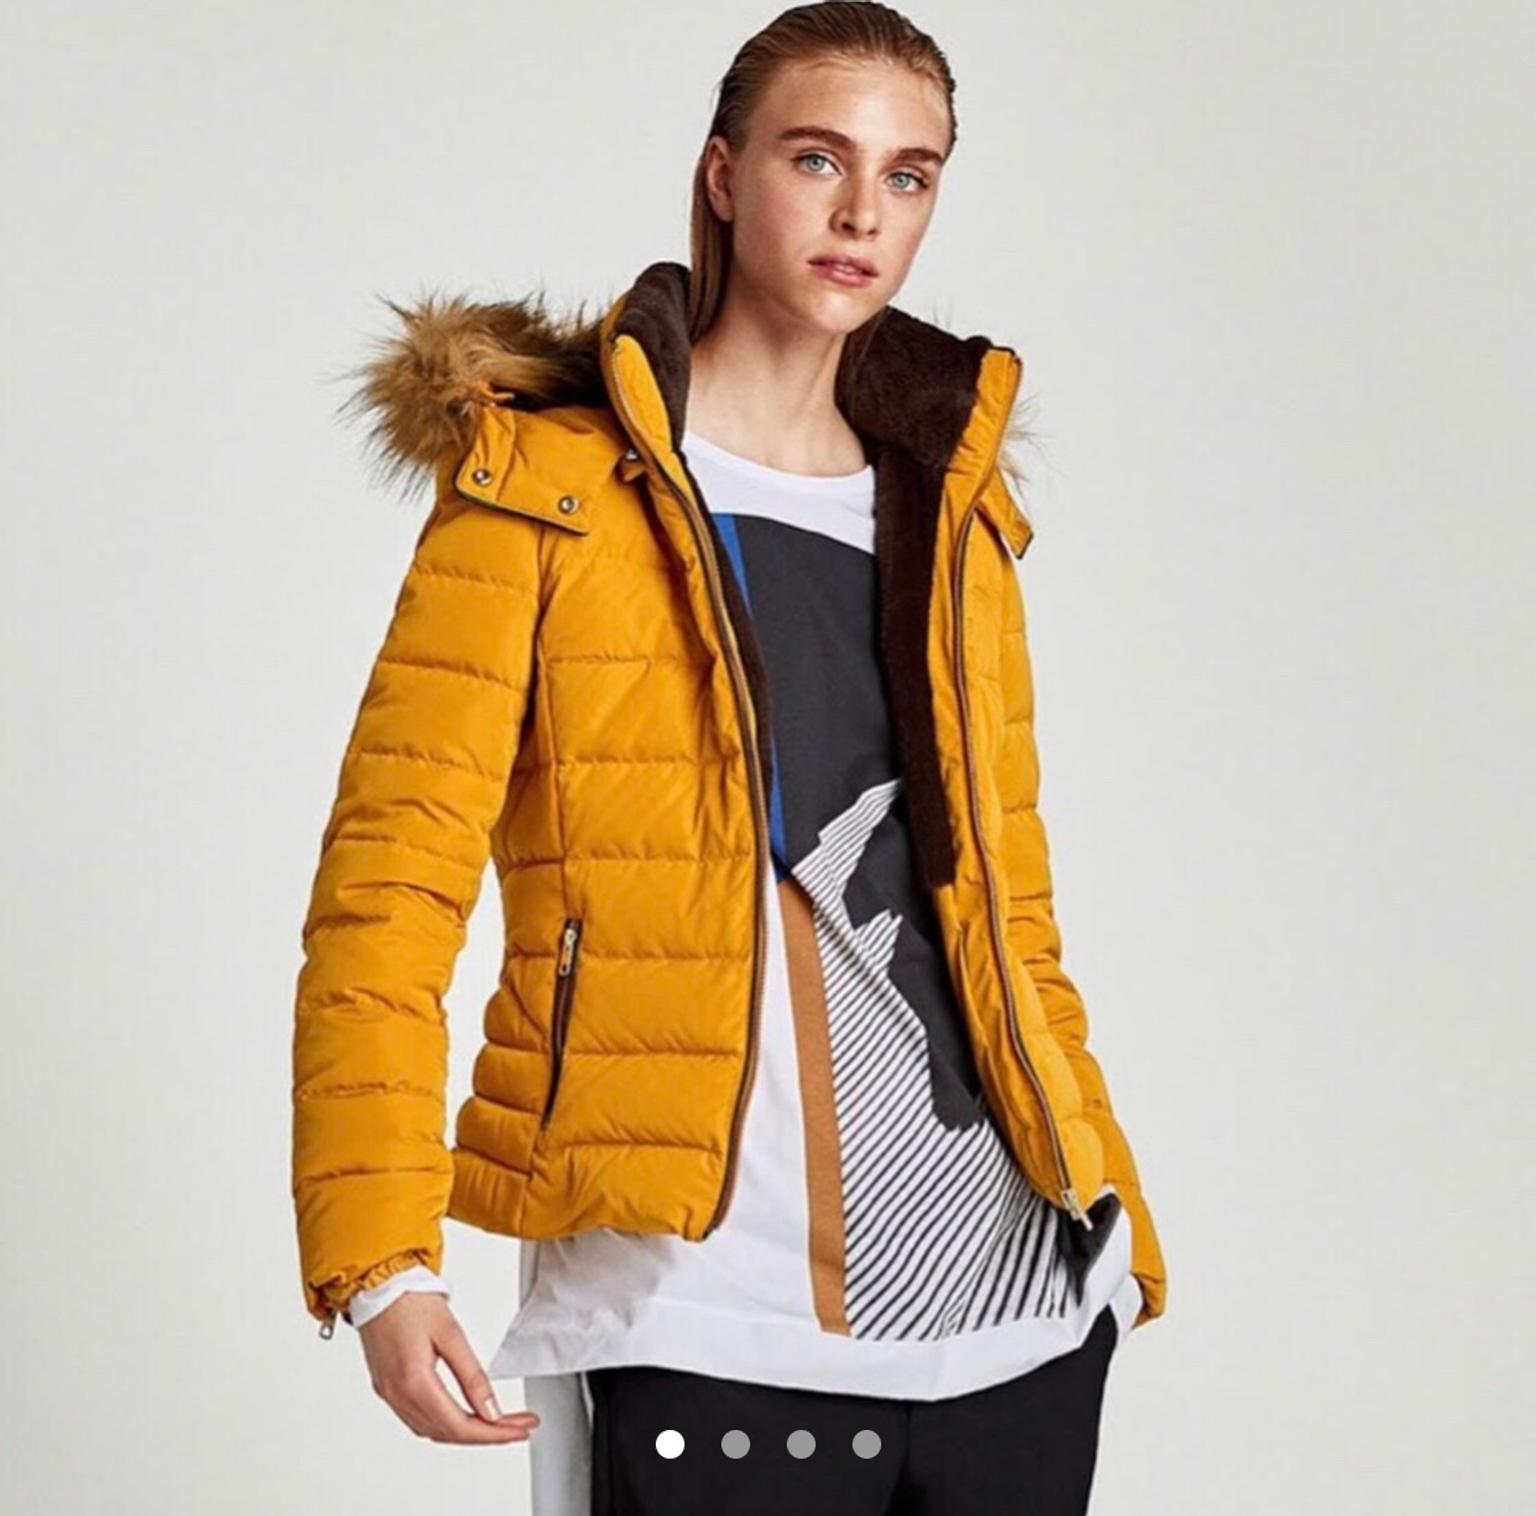 save up to 60% select for latest discount shop ZARA mustard puffer jacket with fur hood